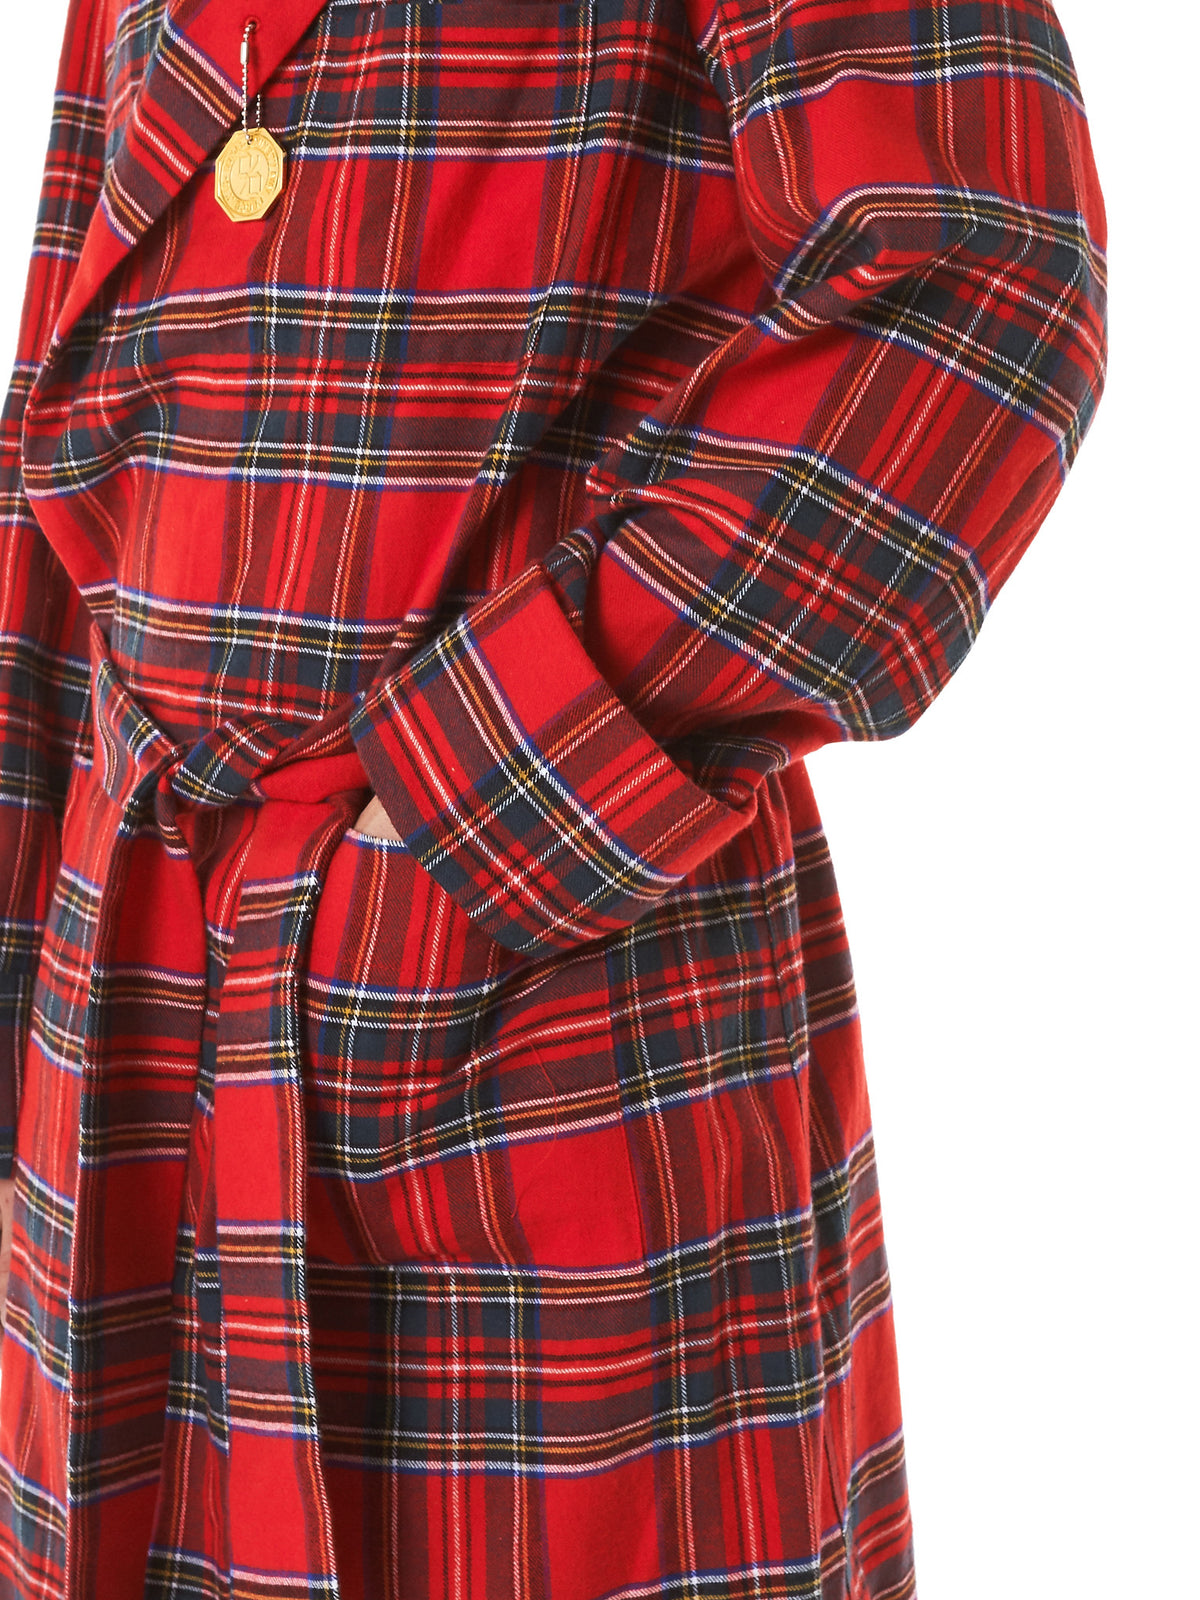 'Pendant' Flannel Coat (NN10-CT03-A-RED) - H. Lorenzo